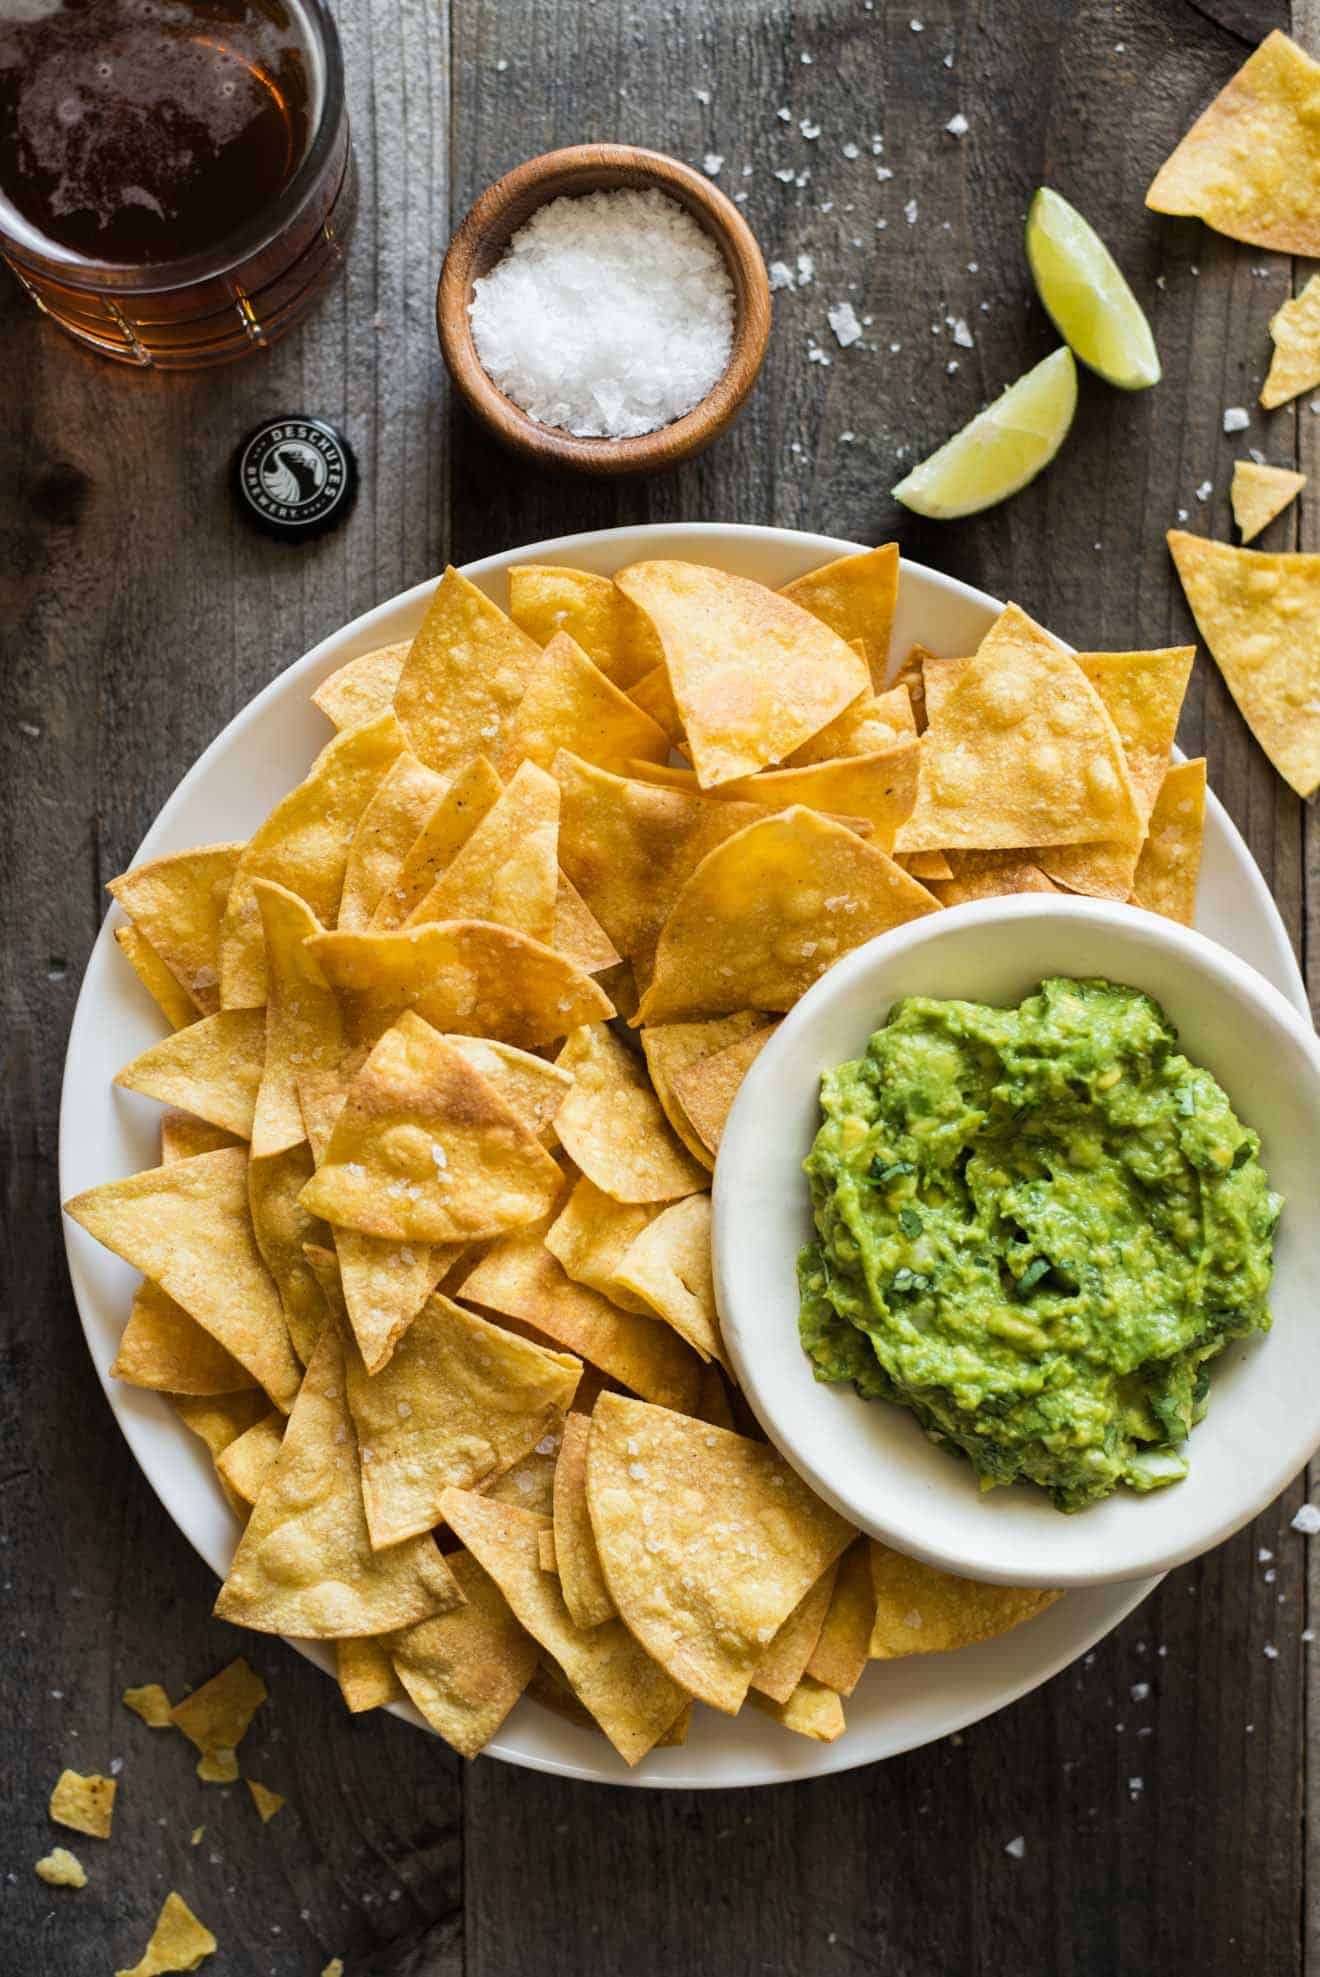 Easy, healthy baked tortilla chips made with 4 ingredients only! (gluten free) by @healthynibs